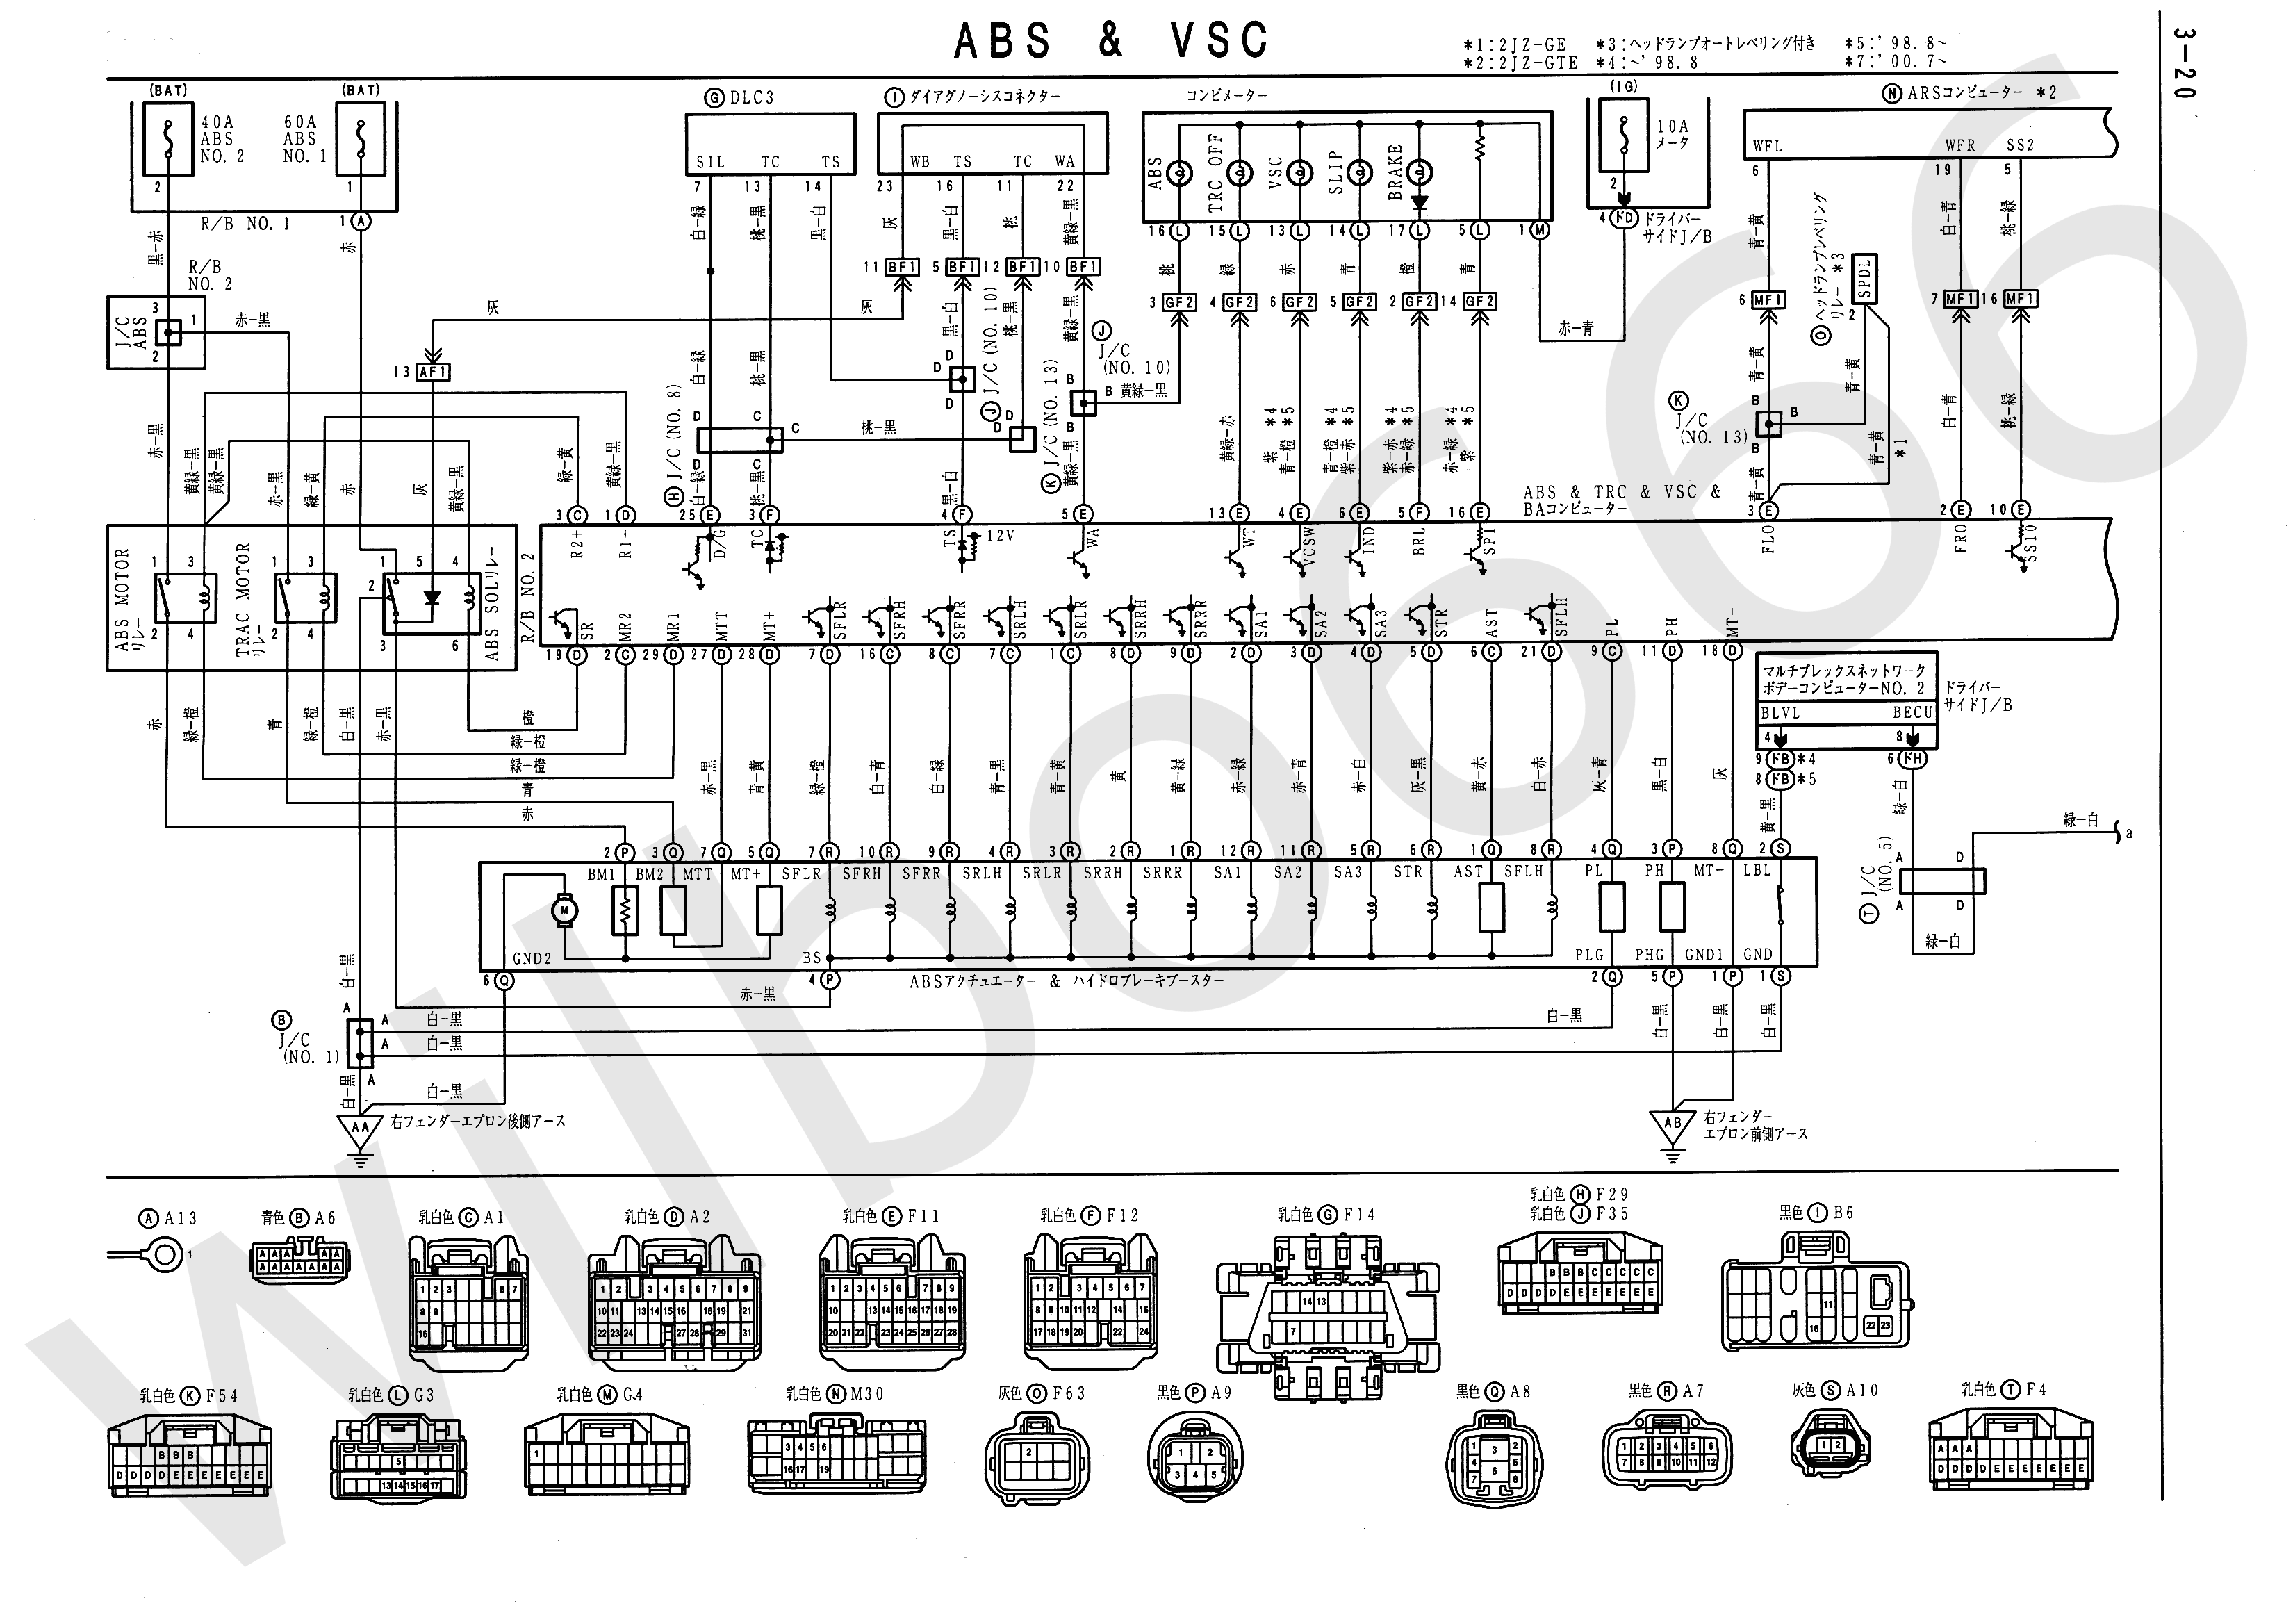 JZS161 Electrical Wiring Diagram 6748505 3 20 wilbo666 2jz gte vvti jzs161 aristo engine wiring TPS Adapter Wire at eliteediting.co